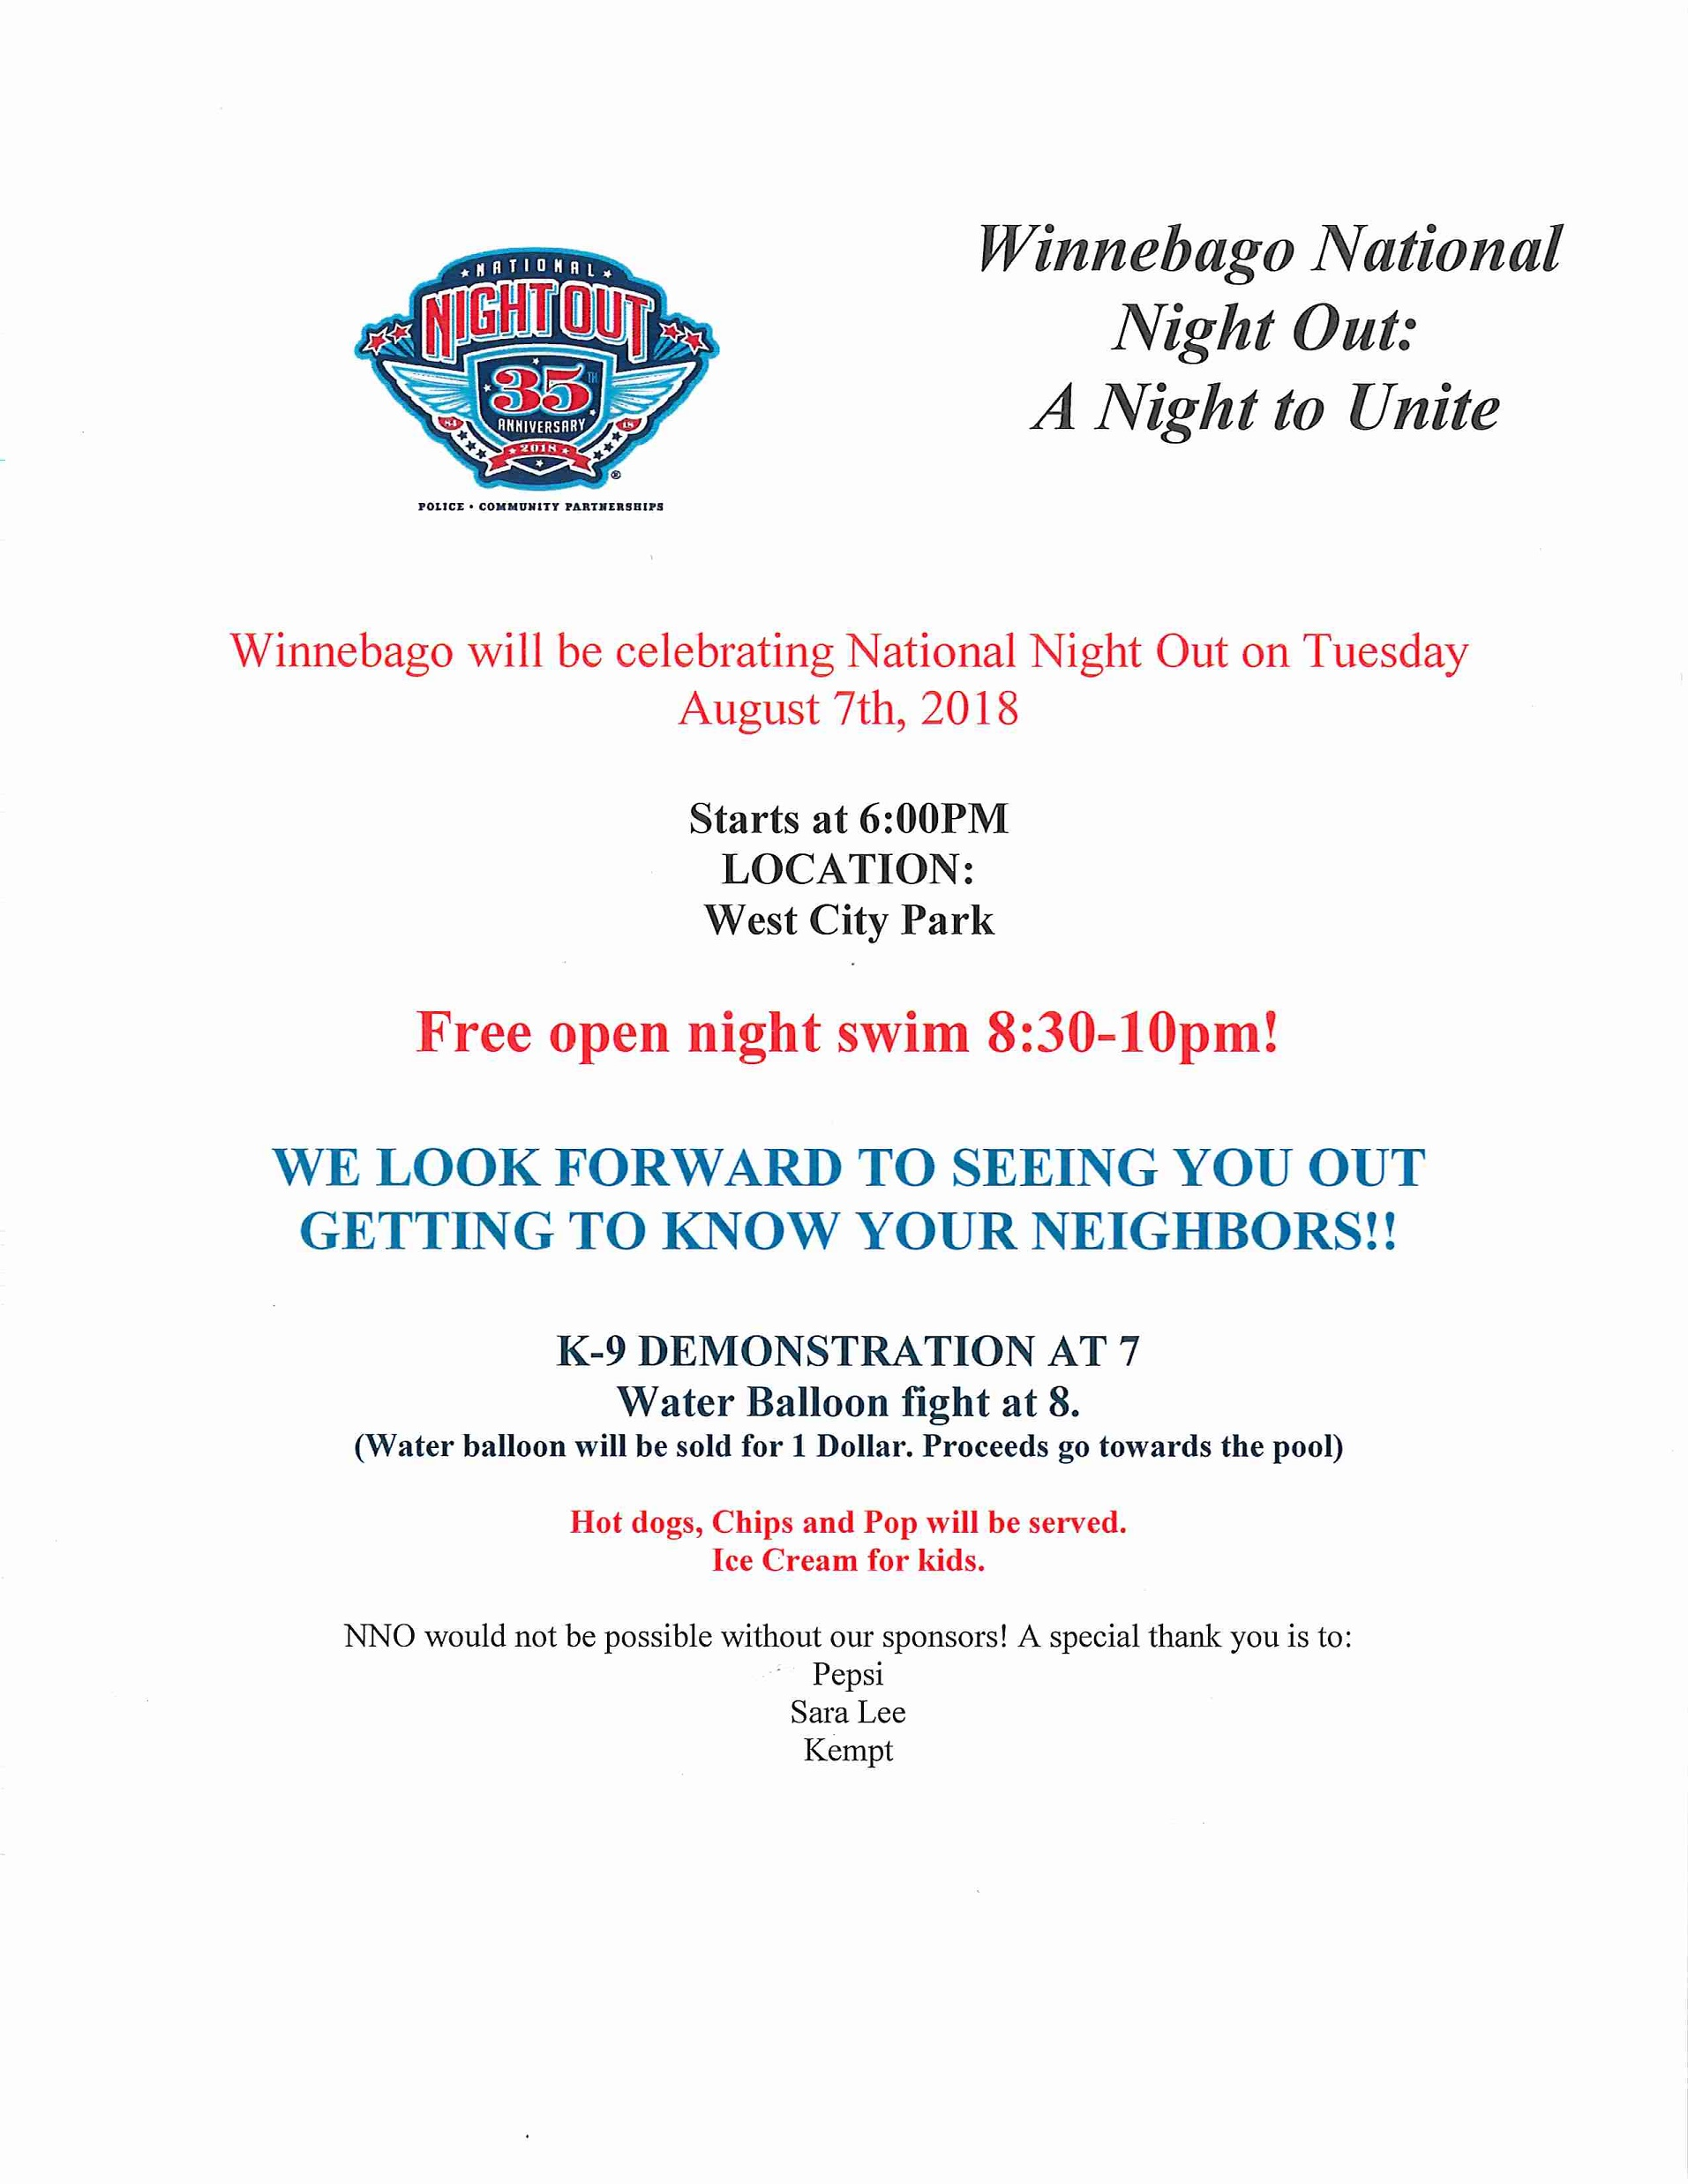 National Night Out August 7, 2018